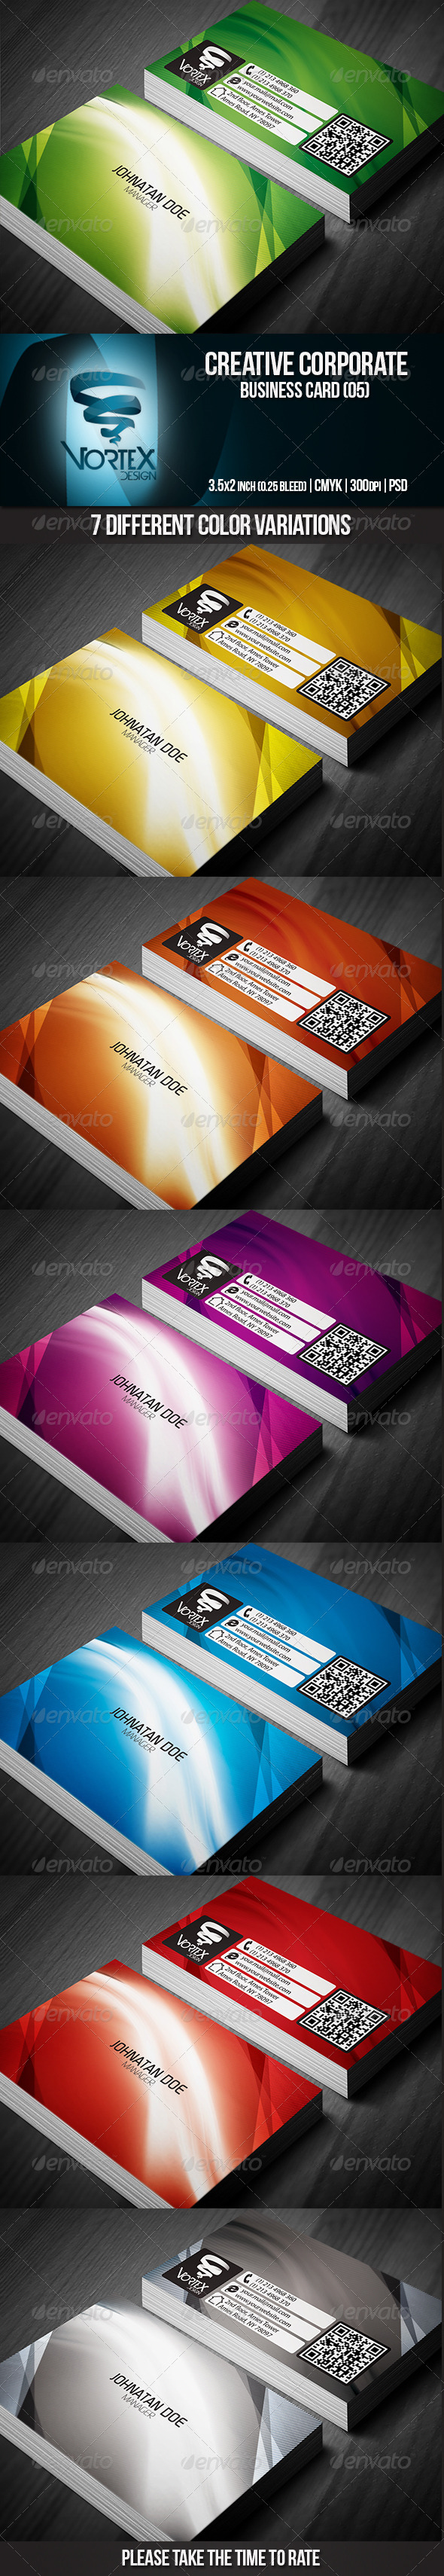 GraphicRiver Creative Corporate Business Card 05 5477921